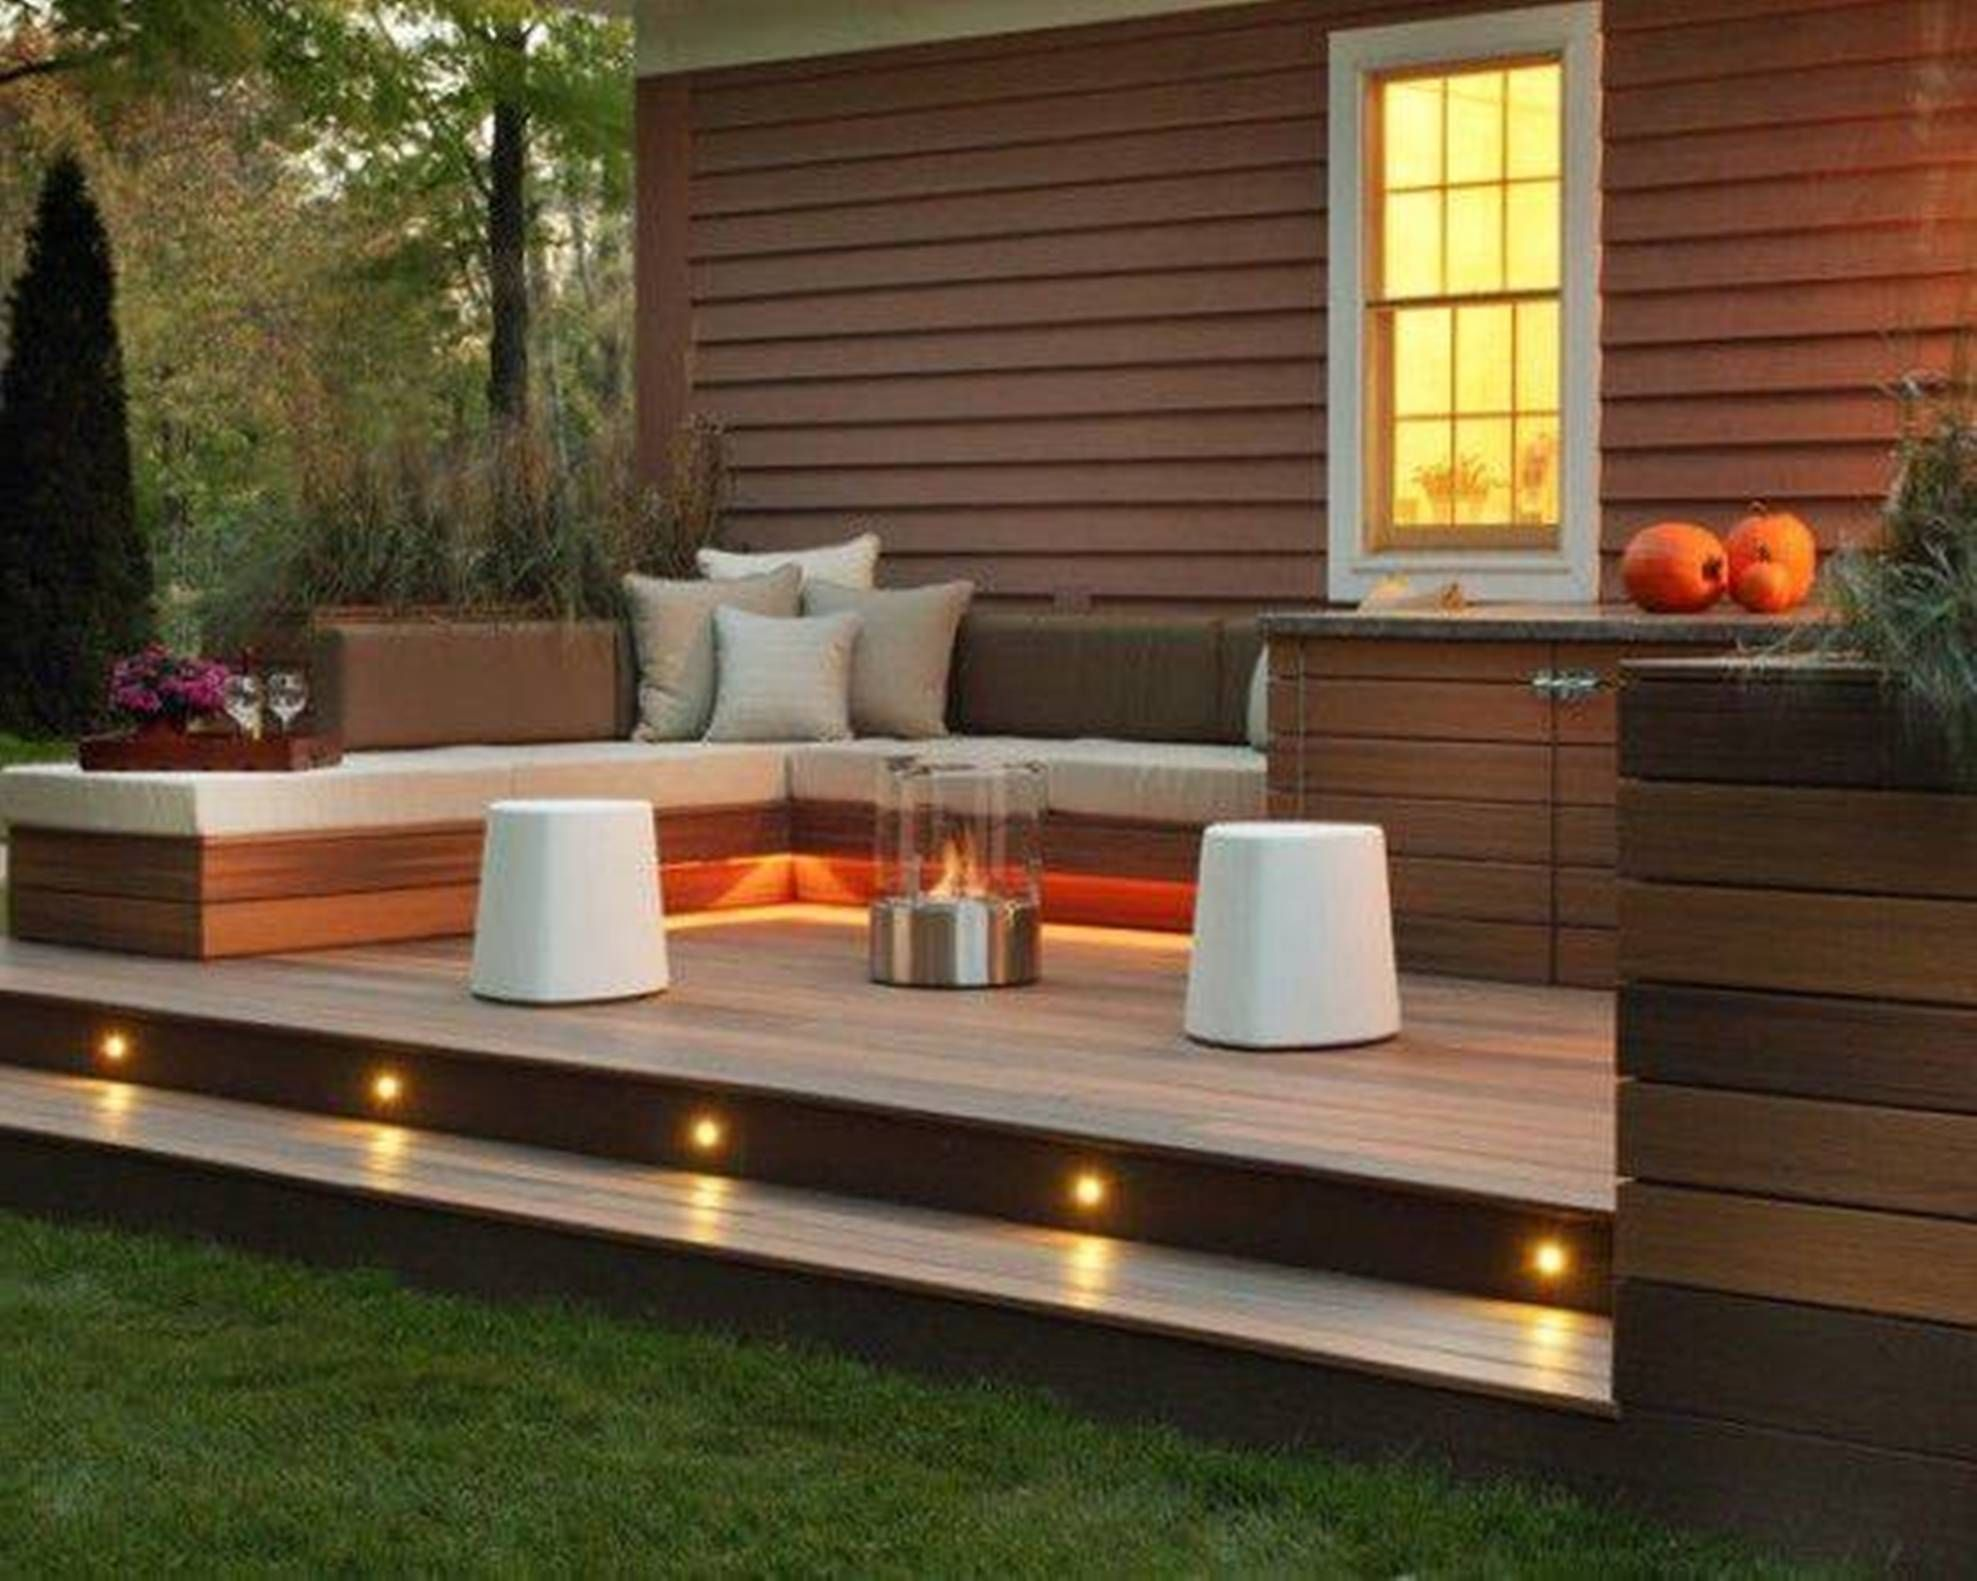 Deck Design Ideas 10 diy awesome and interesting ideas for great gardens 7 Landscaping And Outdoor Building Great Small Backyard Deck Designs Small Backyard Deck Designs With